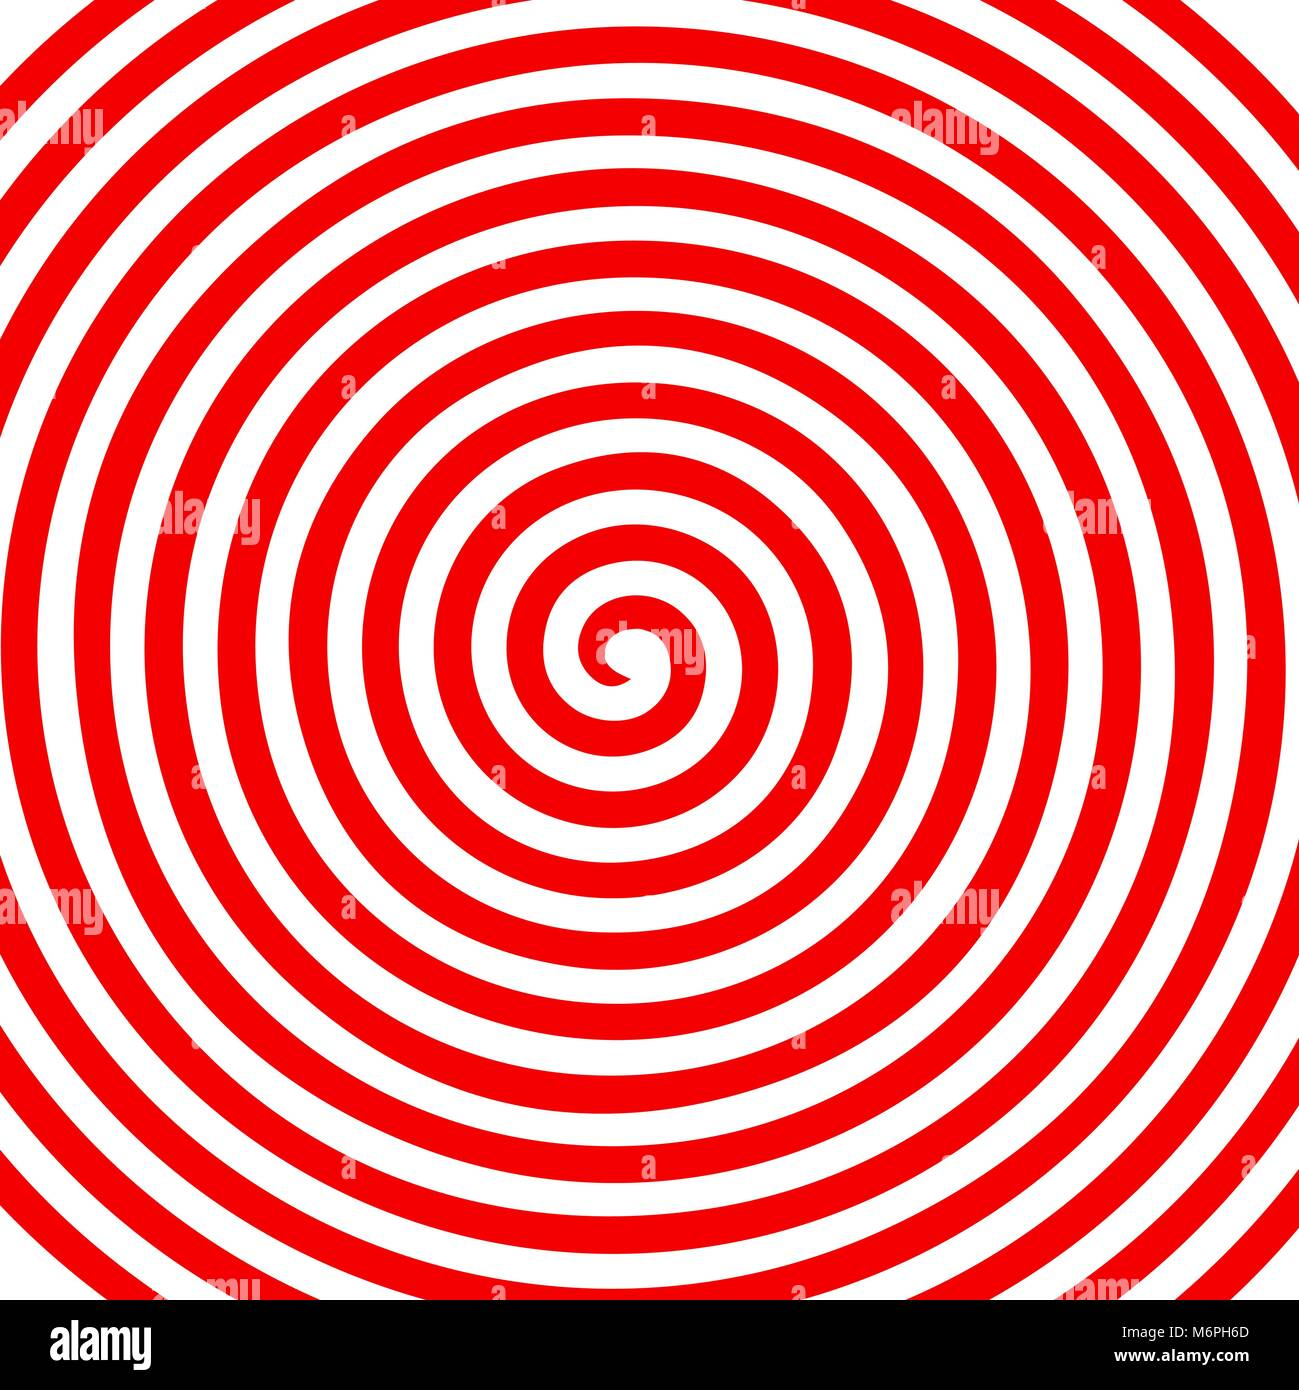 Red White Round Abstract Vortex Hypnotic Spiral Wallpaper Vector